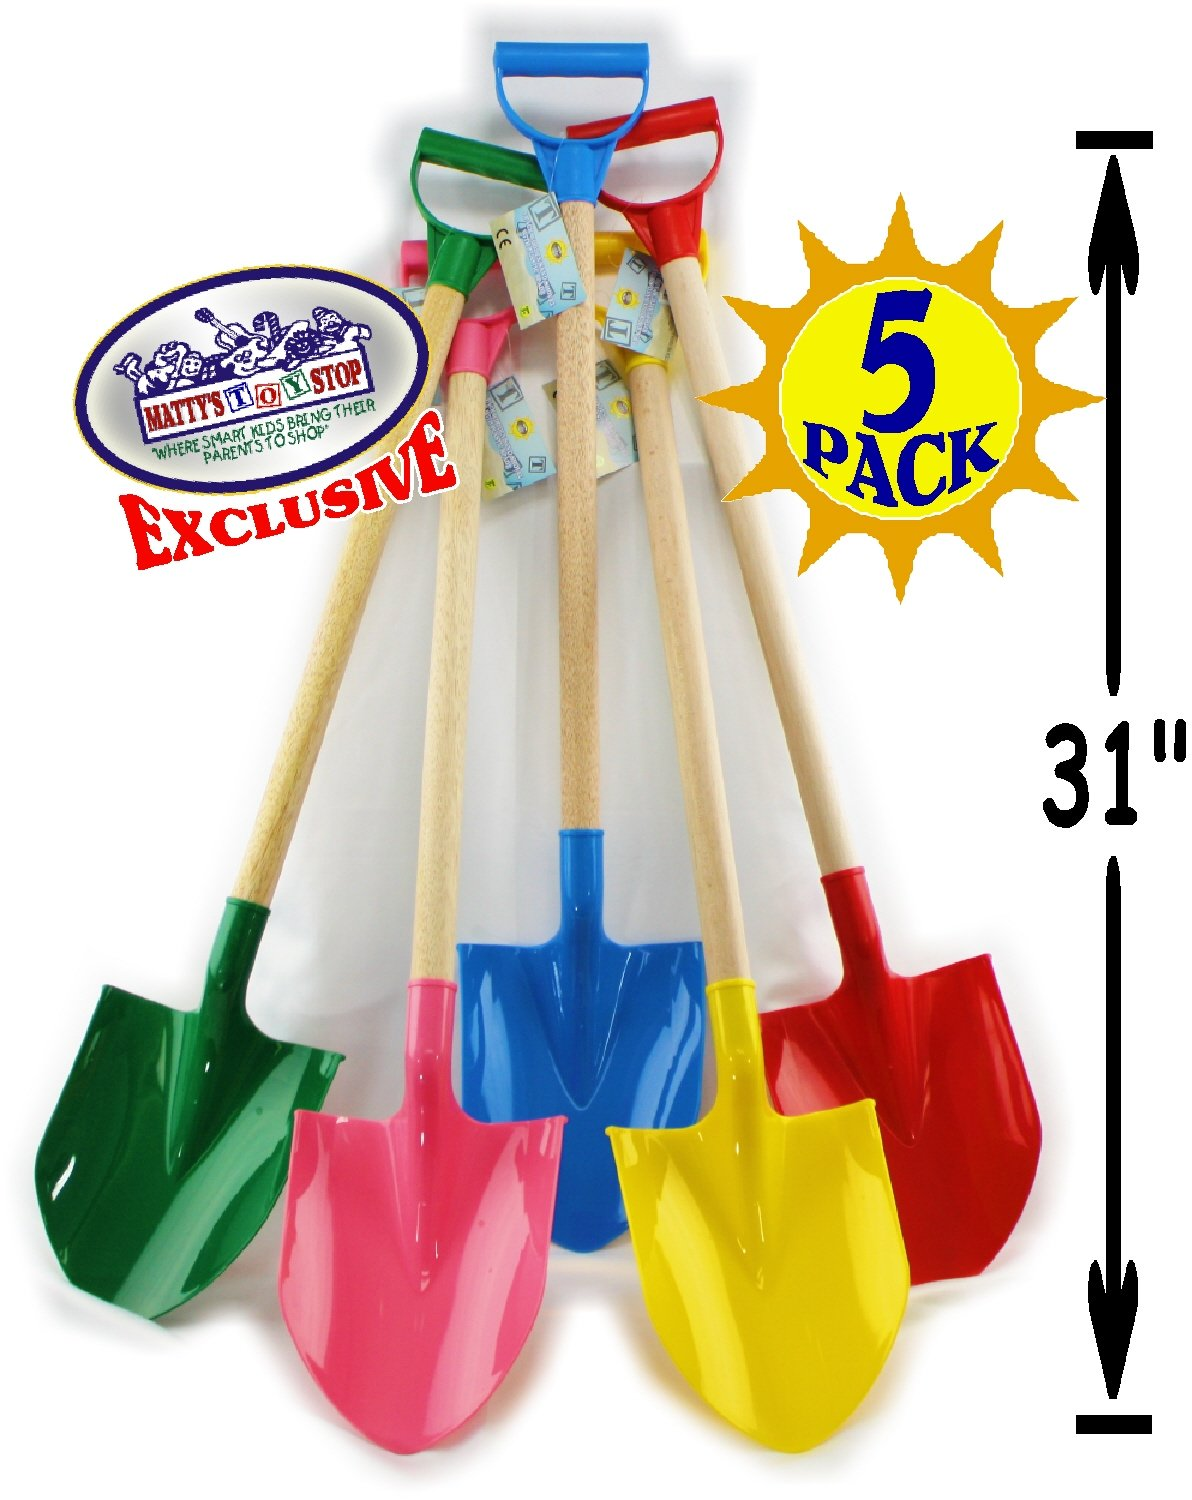 Matty's Toy Stop 31'' Heavy Duty Wooden Kids Sand Shovels with Plastic Spade & Handle (Red, Blue, Green, Yellow & Pink) Complete Gift Set Bundle - 5 Pack